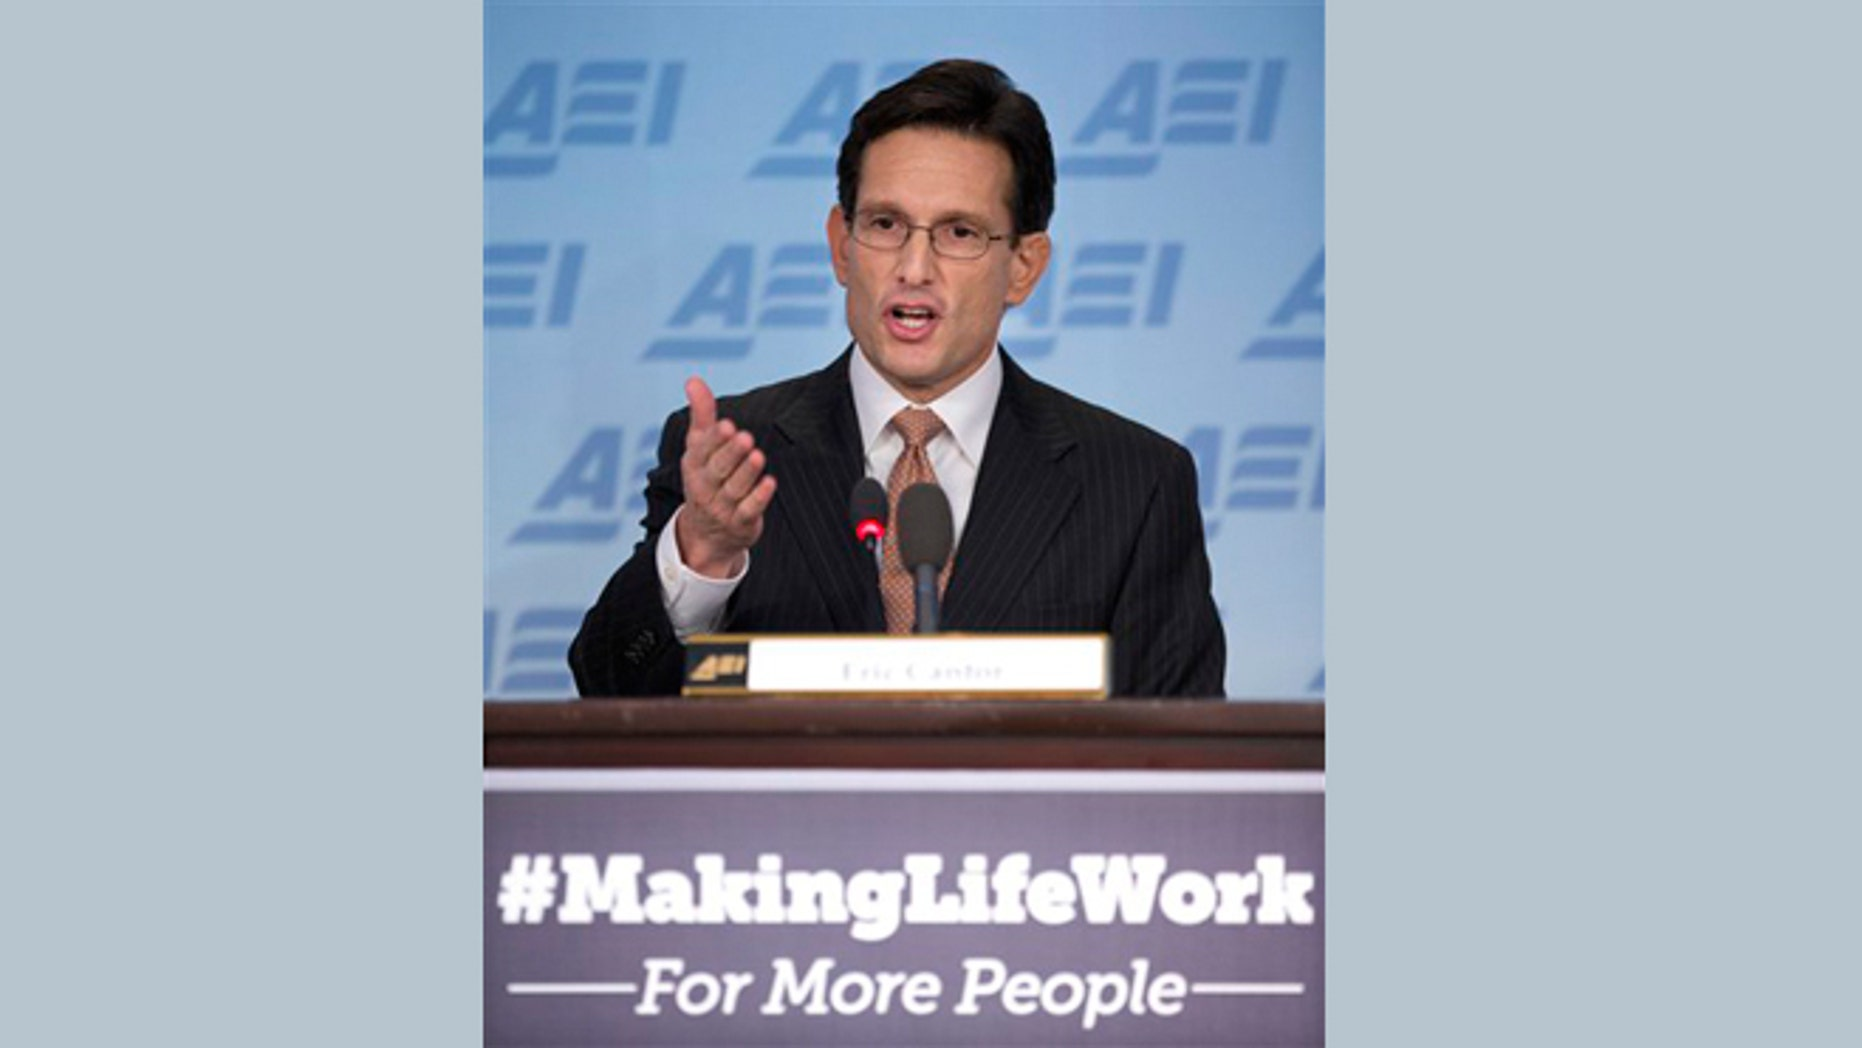 The stunning secret the media missed in Eric Cantor's AEI